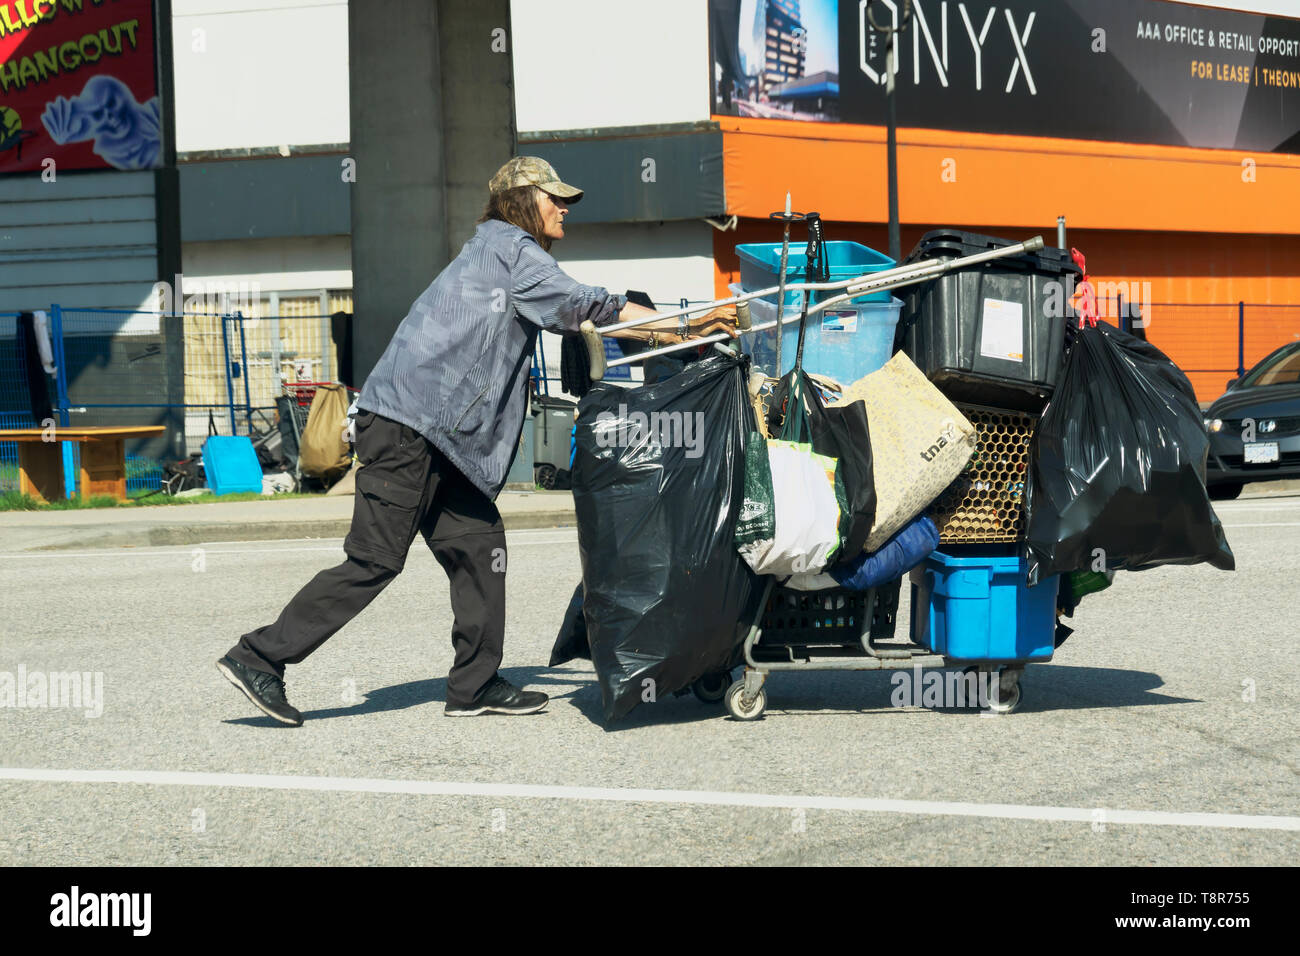 a-homeless-man-walking-across-an-intersection-pushing-a-shopping-cart-loaded-with-his-worldly-possessions-T8R755.jpg